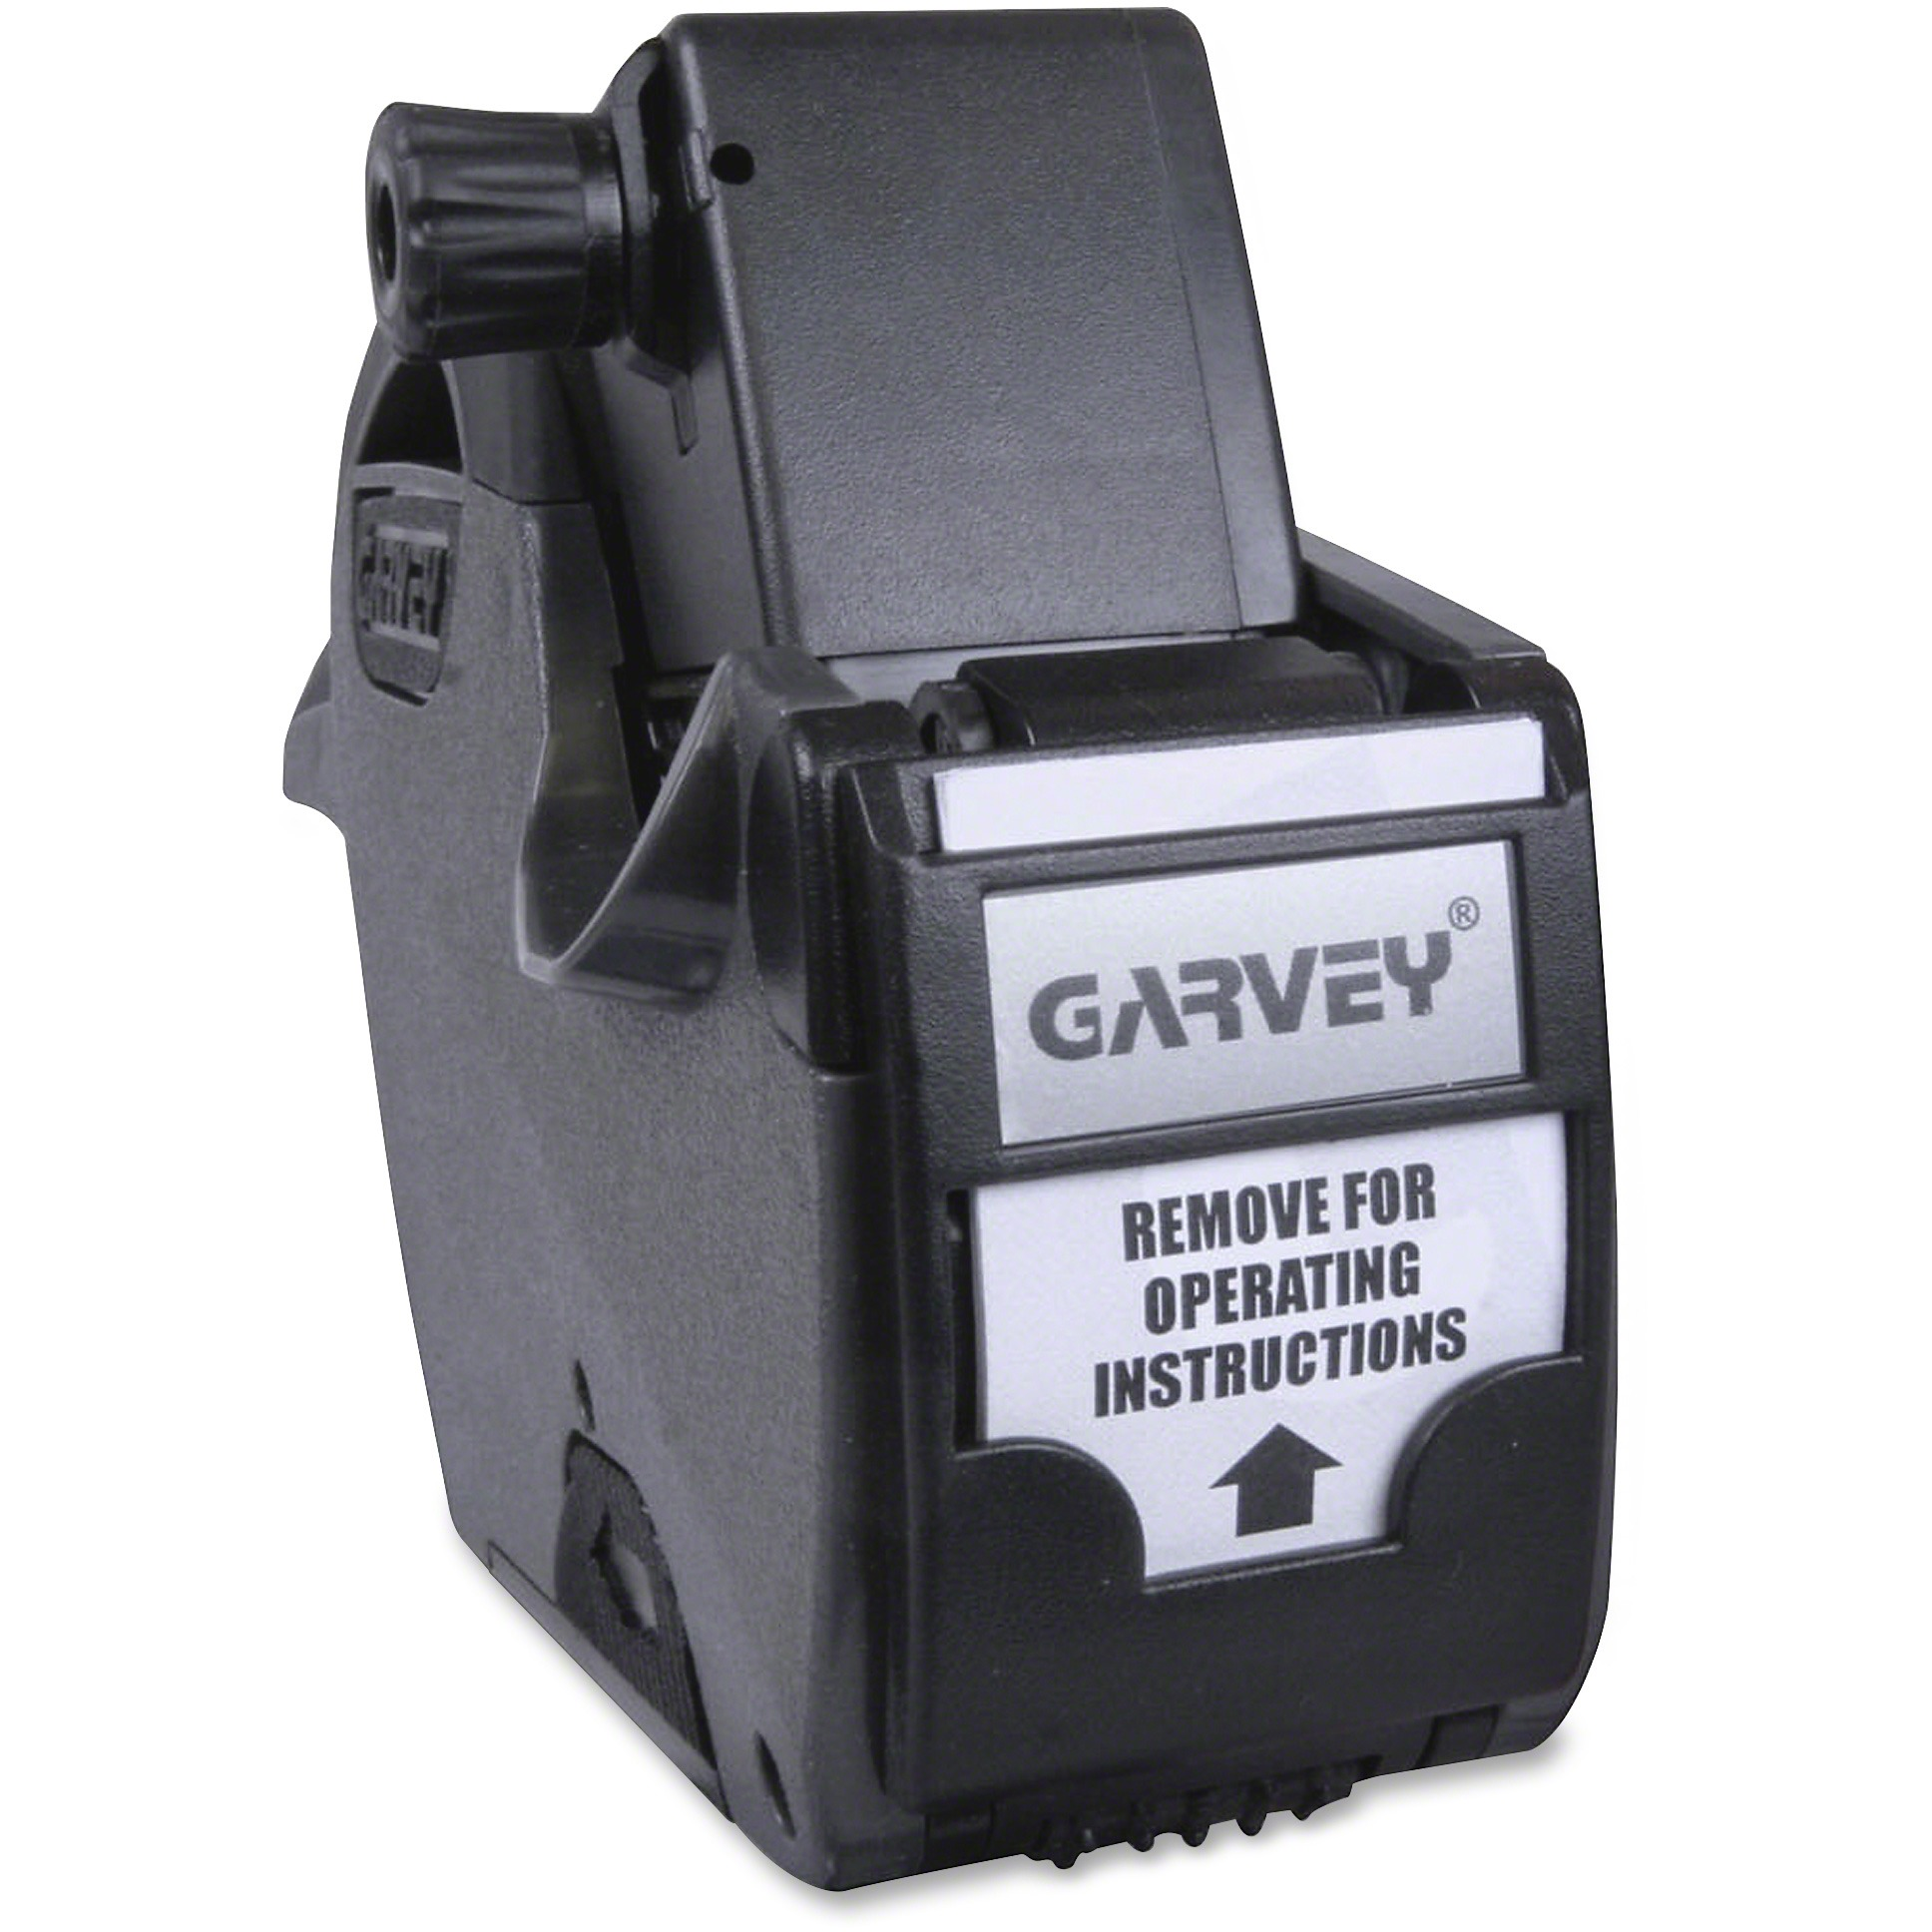 Garvey Pricemarker Kit, Model 22-6, 1-Line, 6 Characters/Line, 7/16 x 13/16 Label Size